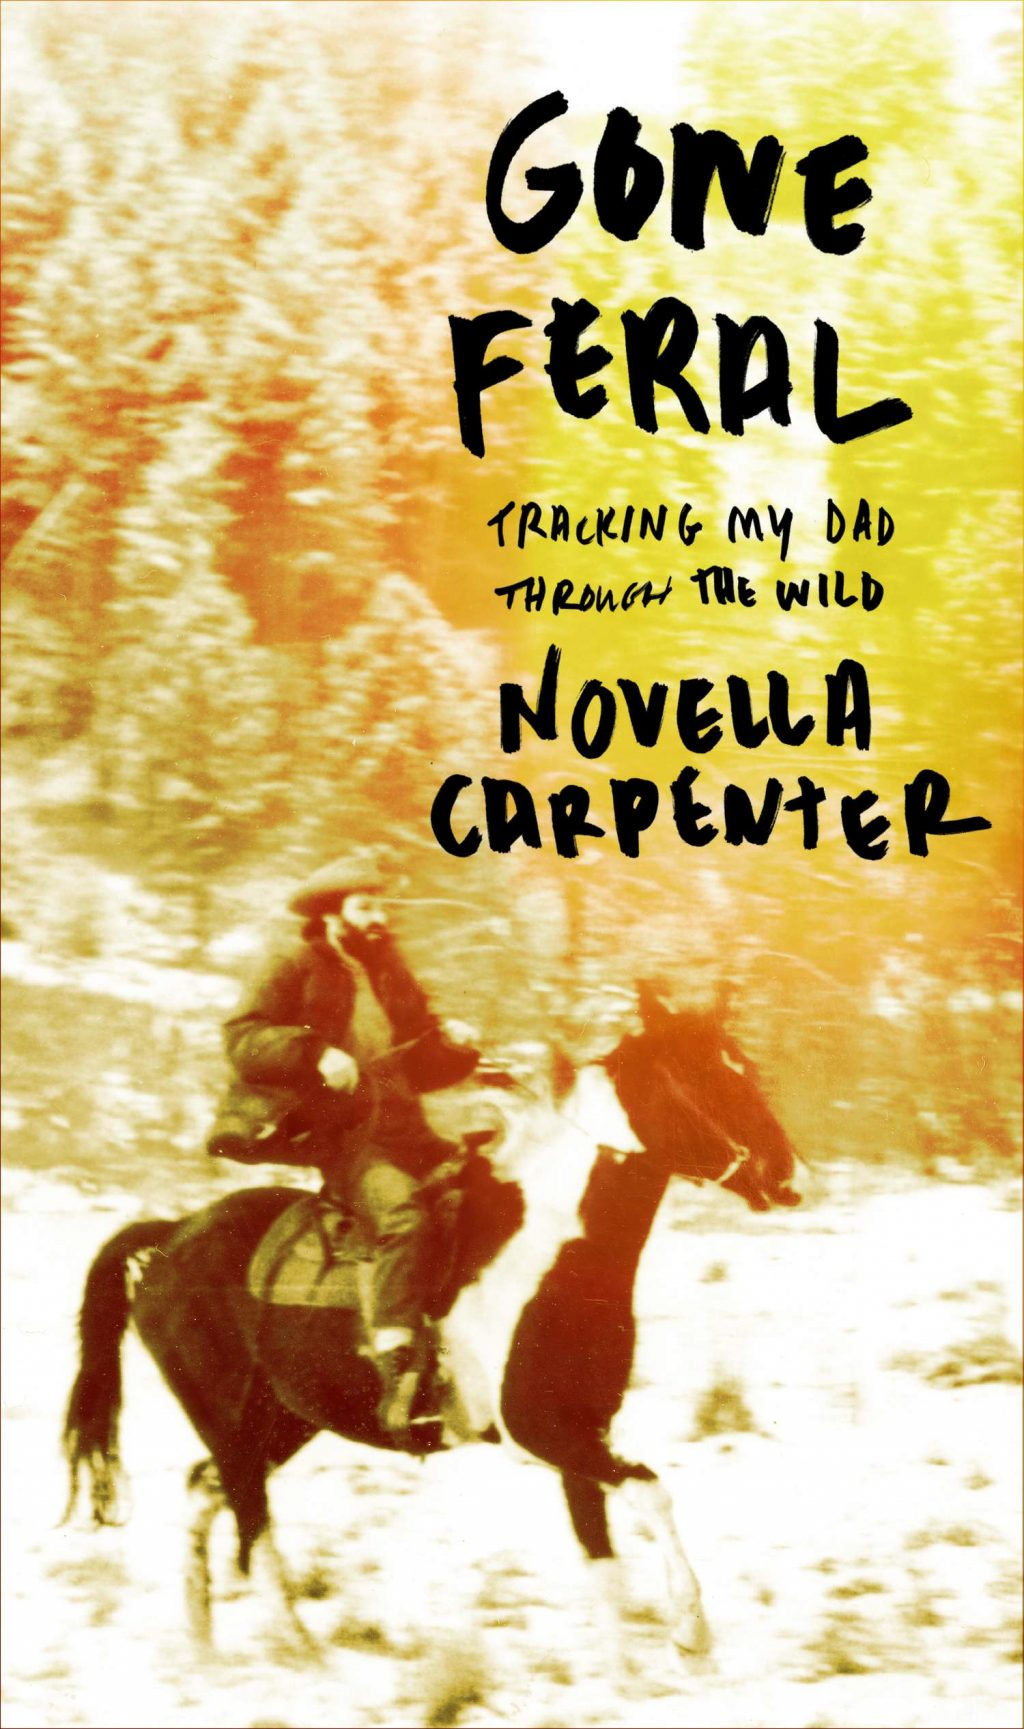 Gone Feral:Tracking My Dad Through the Wild by Novella Carpenter